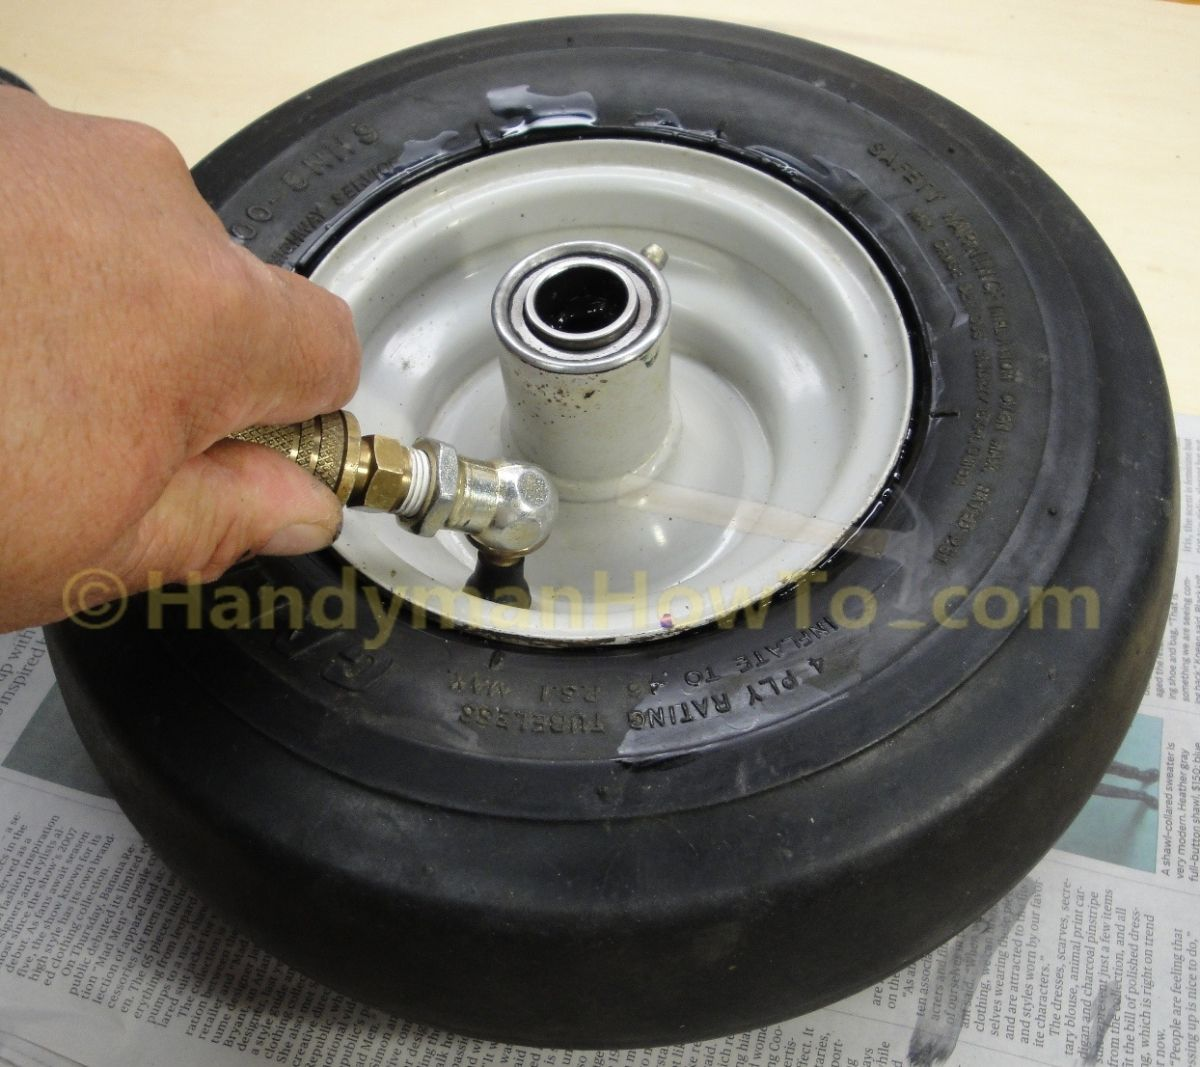 Inflate the Tire with Compressed Air Lawn mower tires